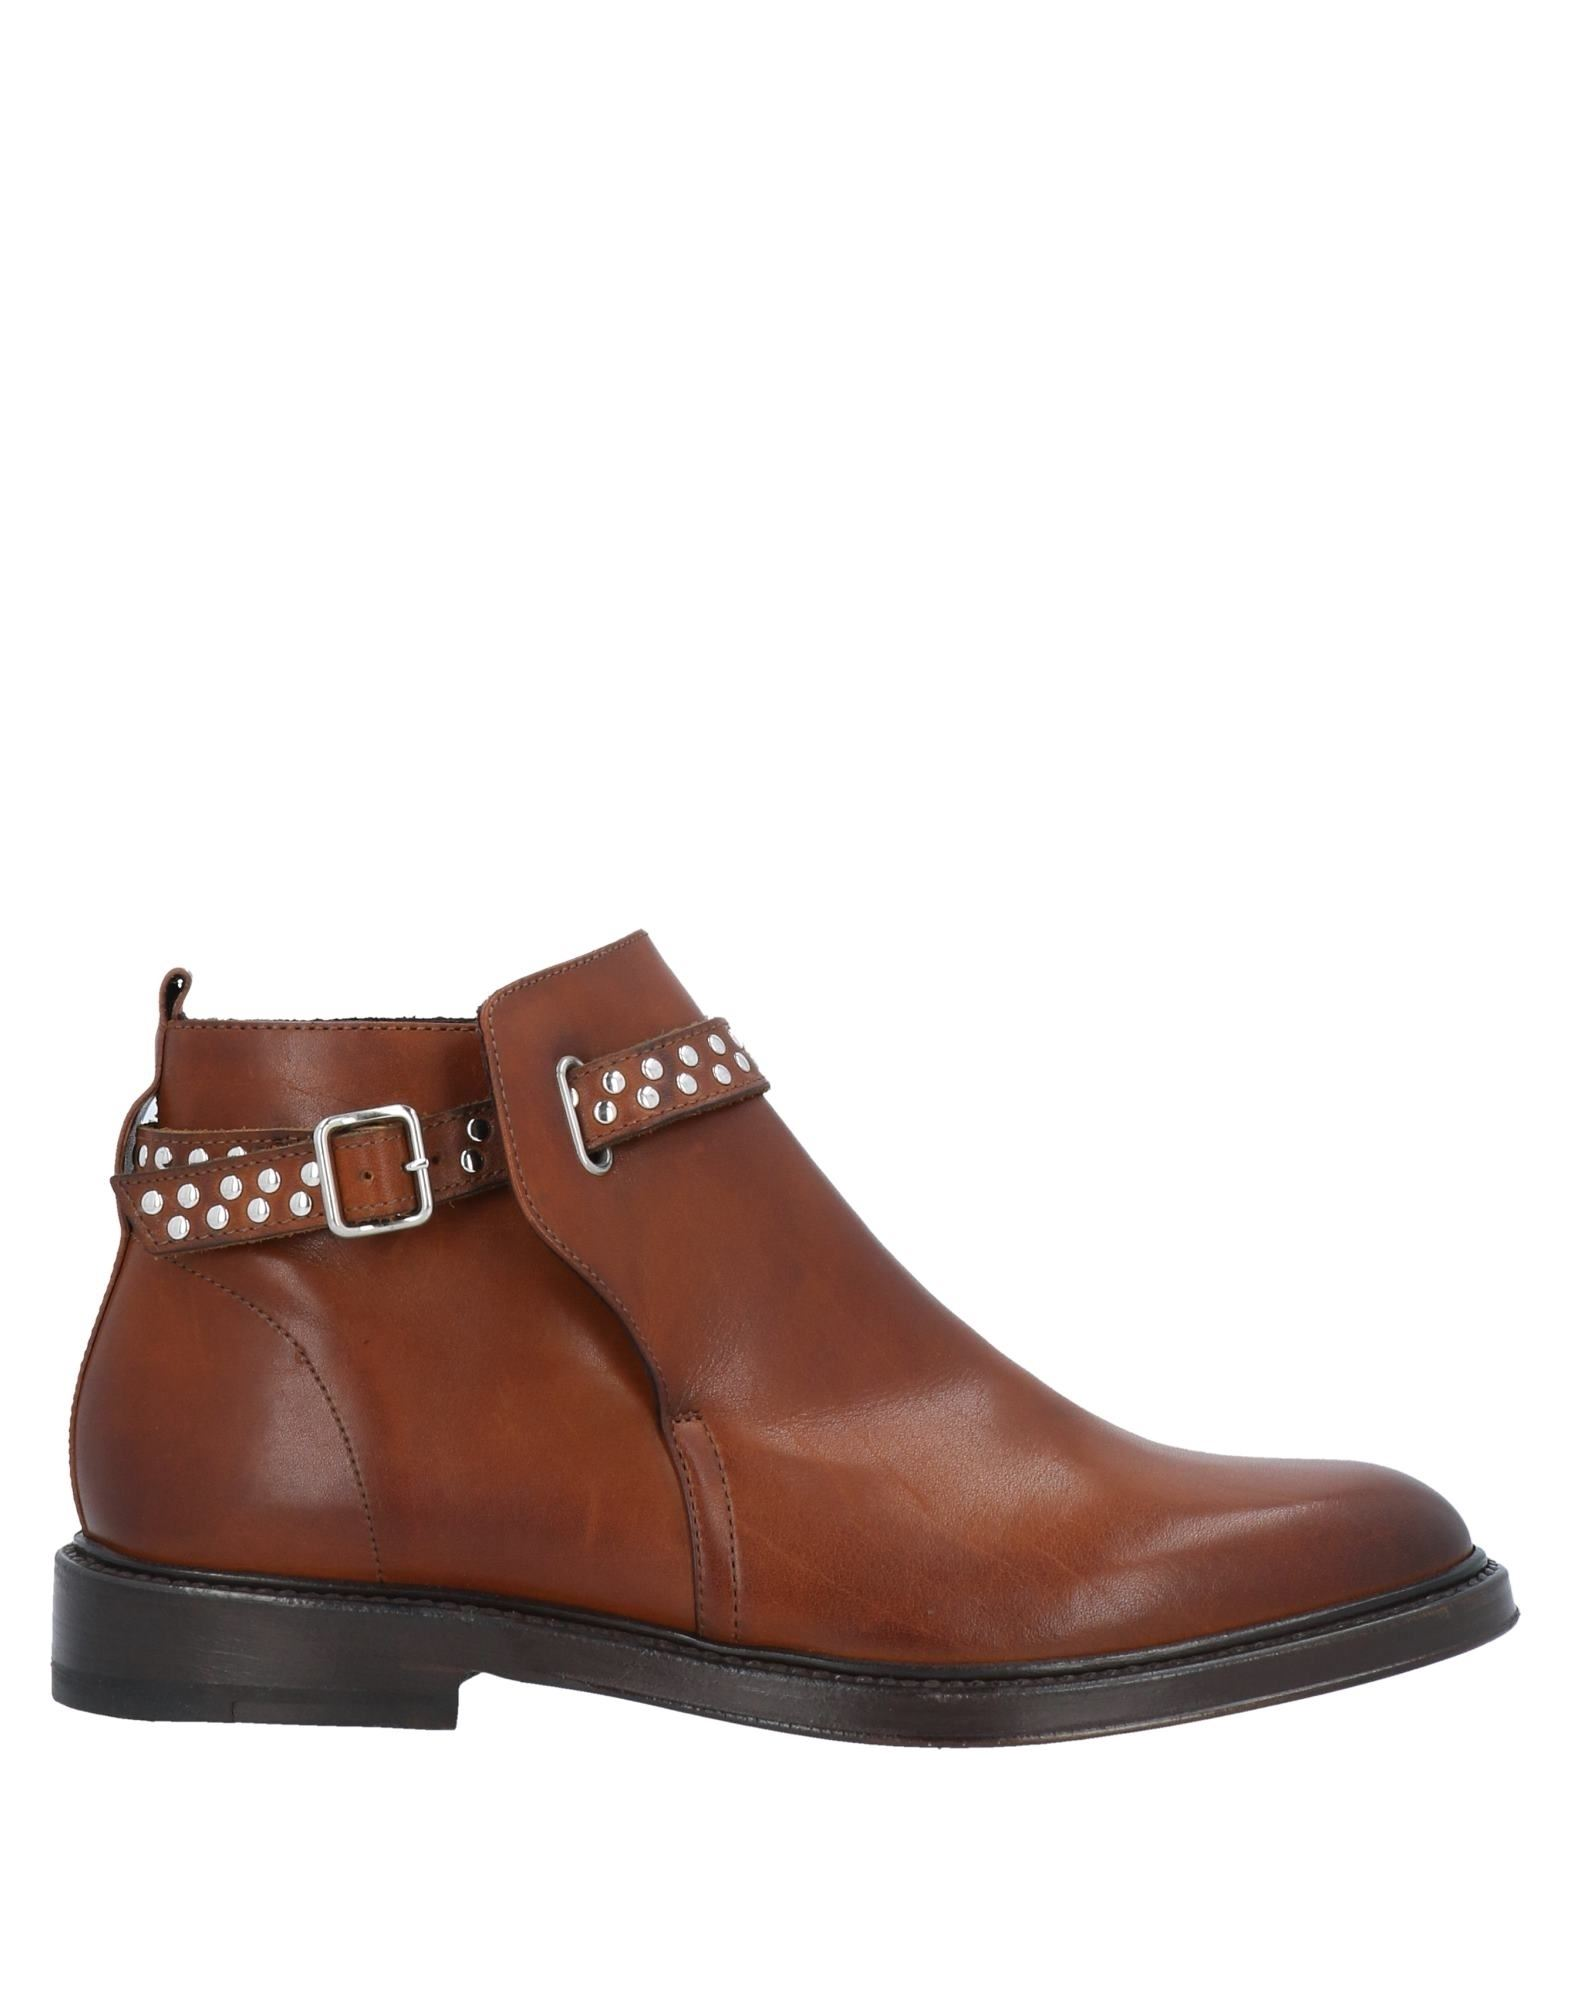 Henderson Baracco Ankle Boots In Tan